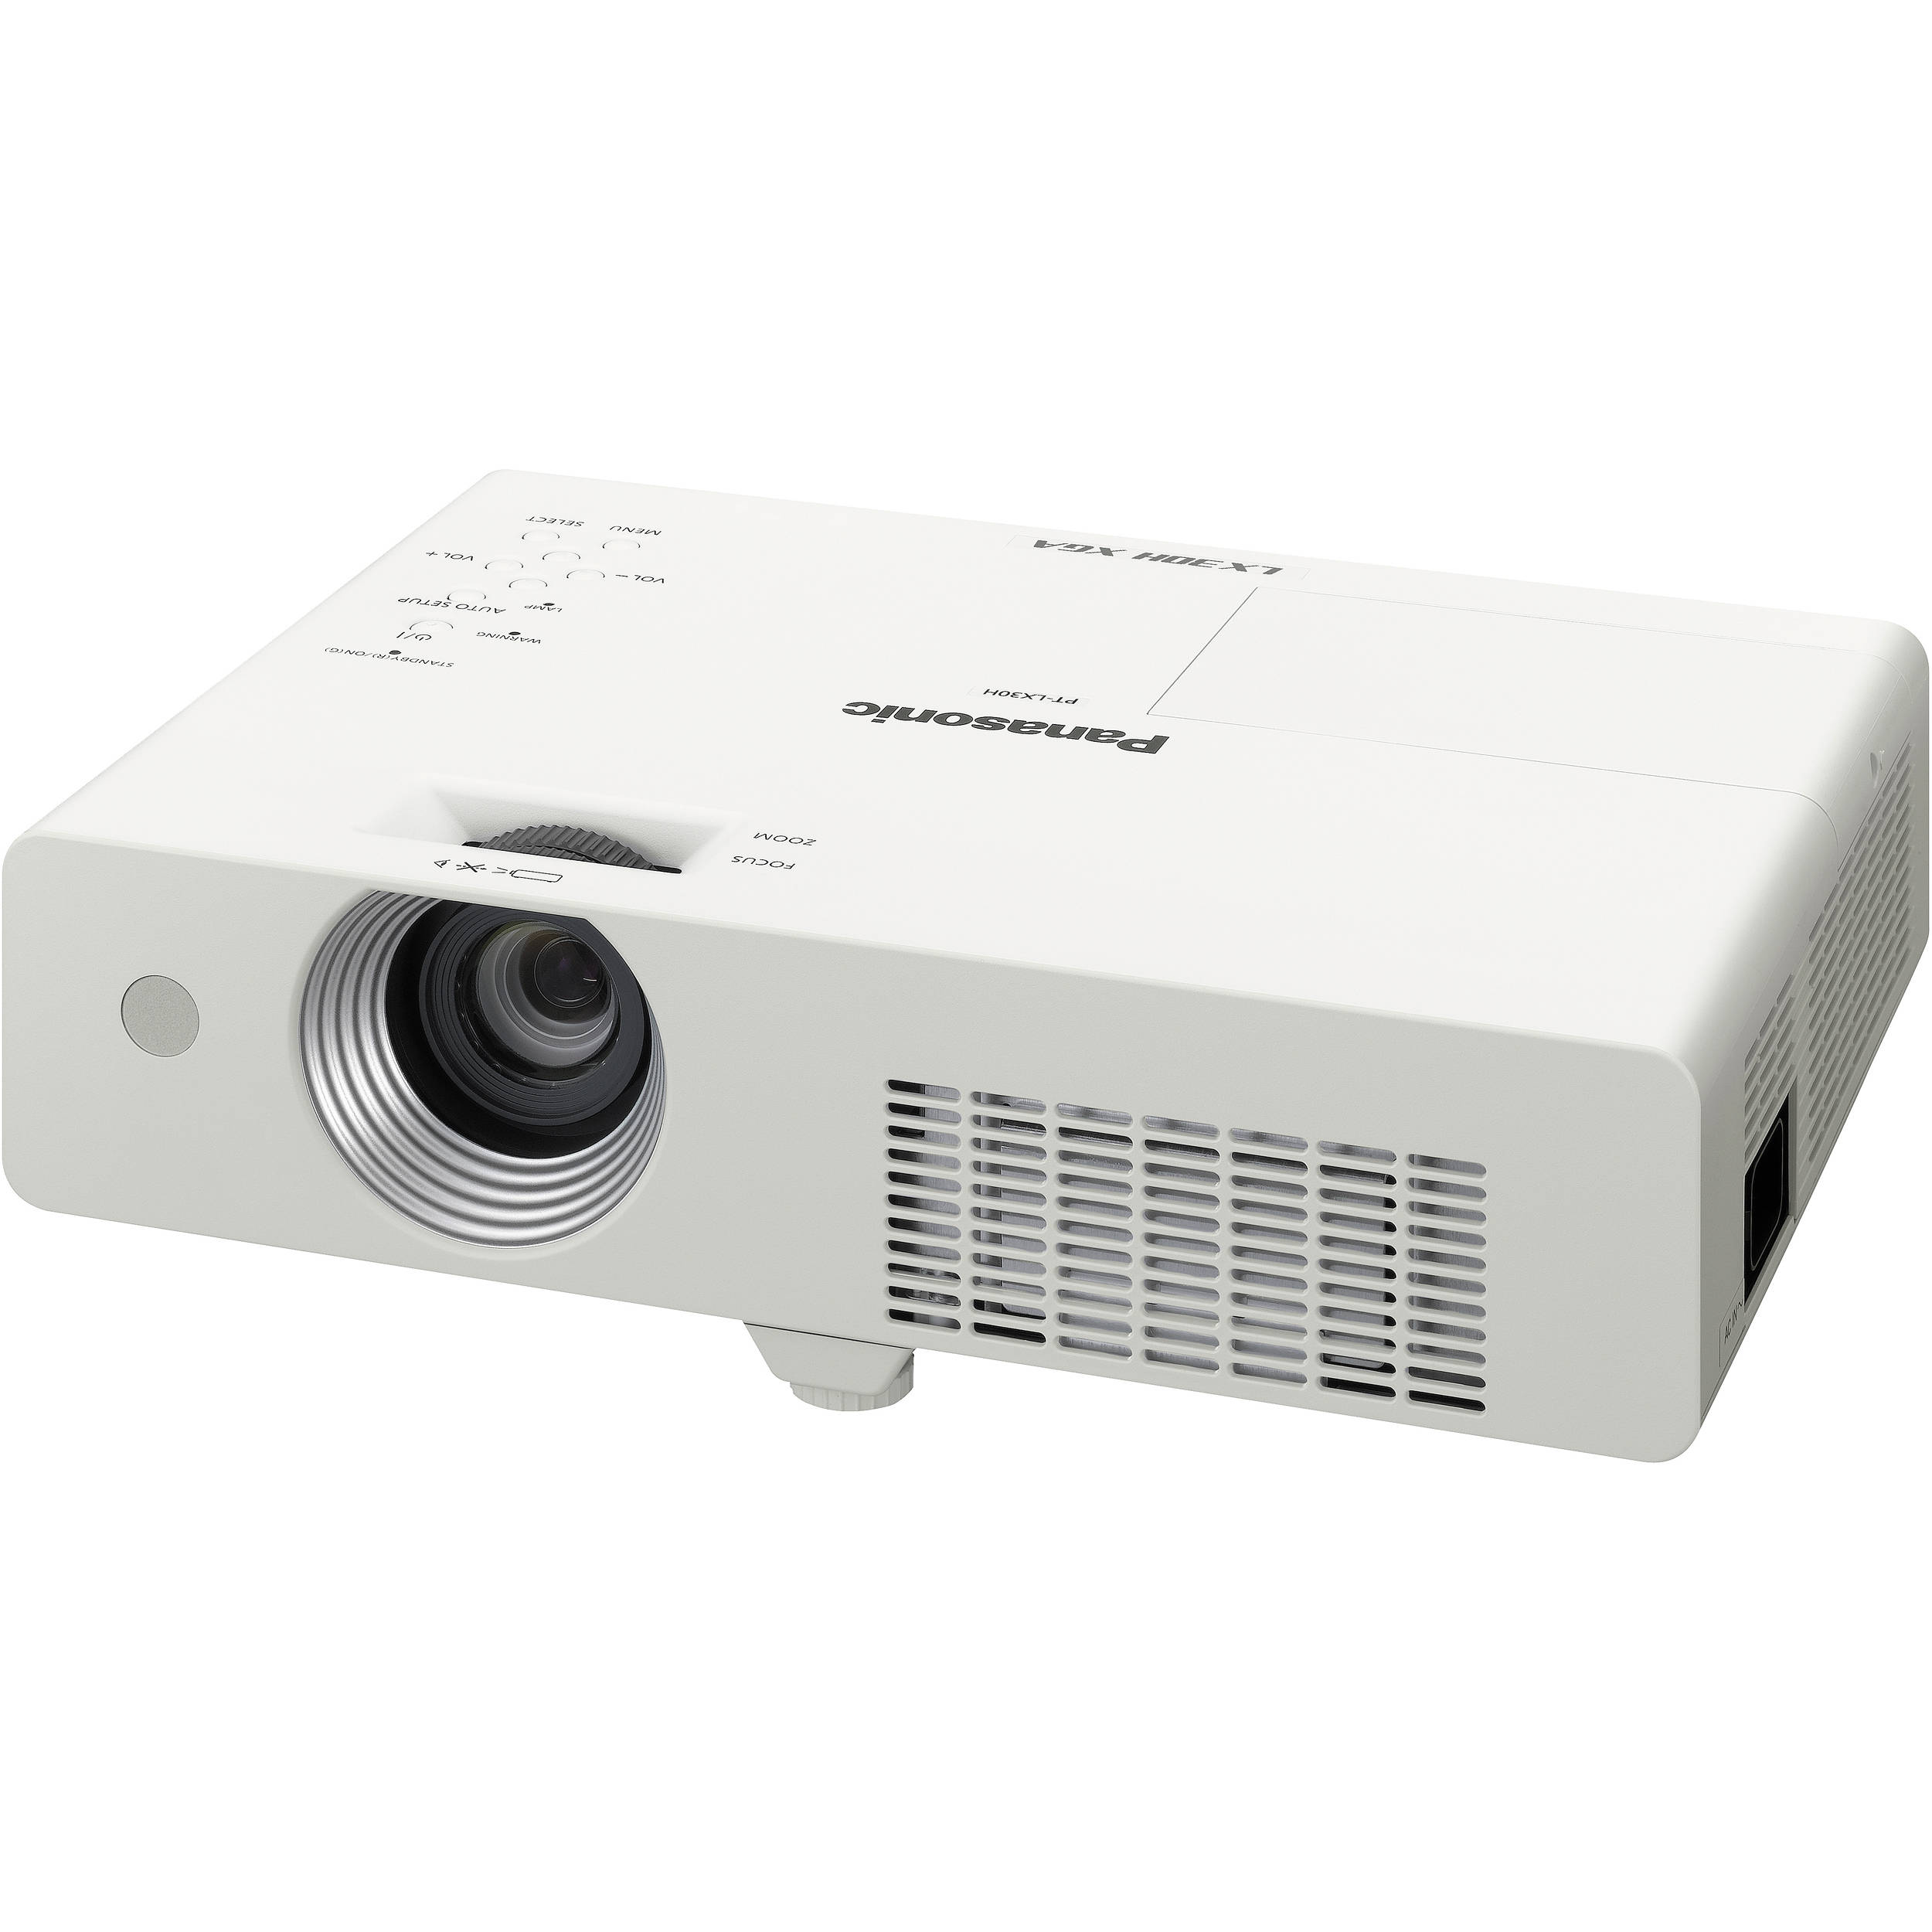 Panasonic pt lx30hu portable lcd projector pt lx30hu b h photo for How to make mobile projector